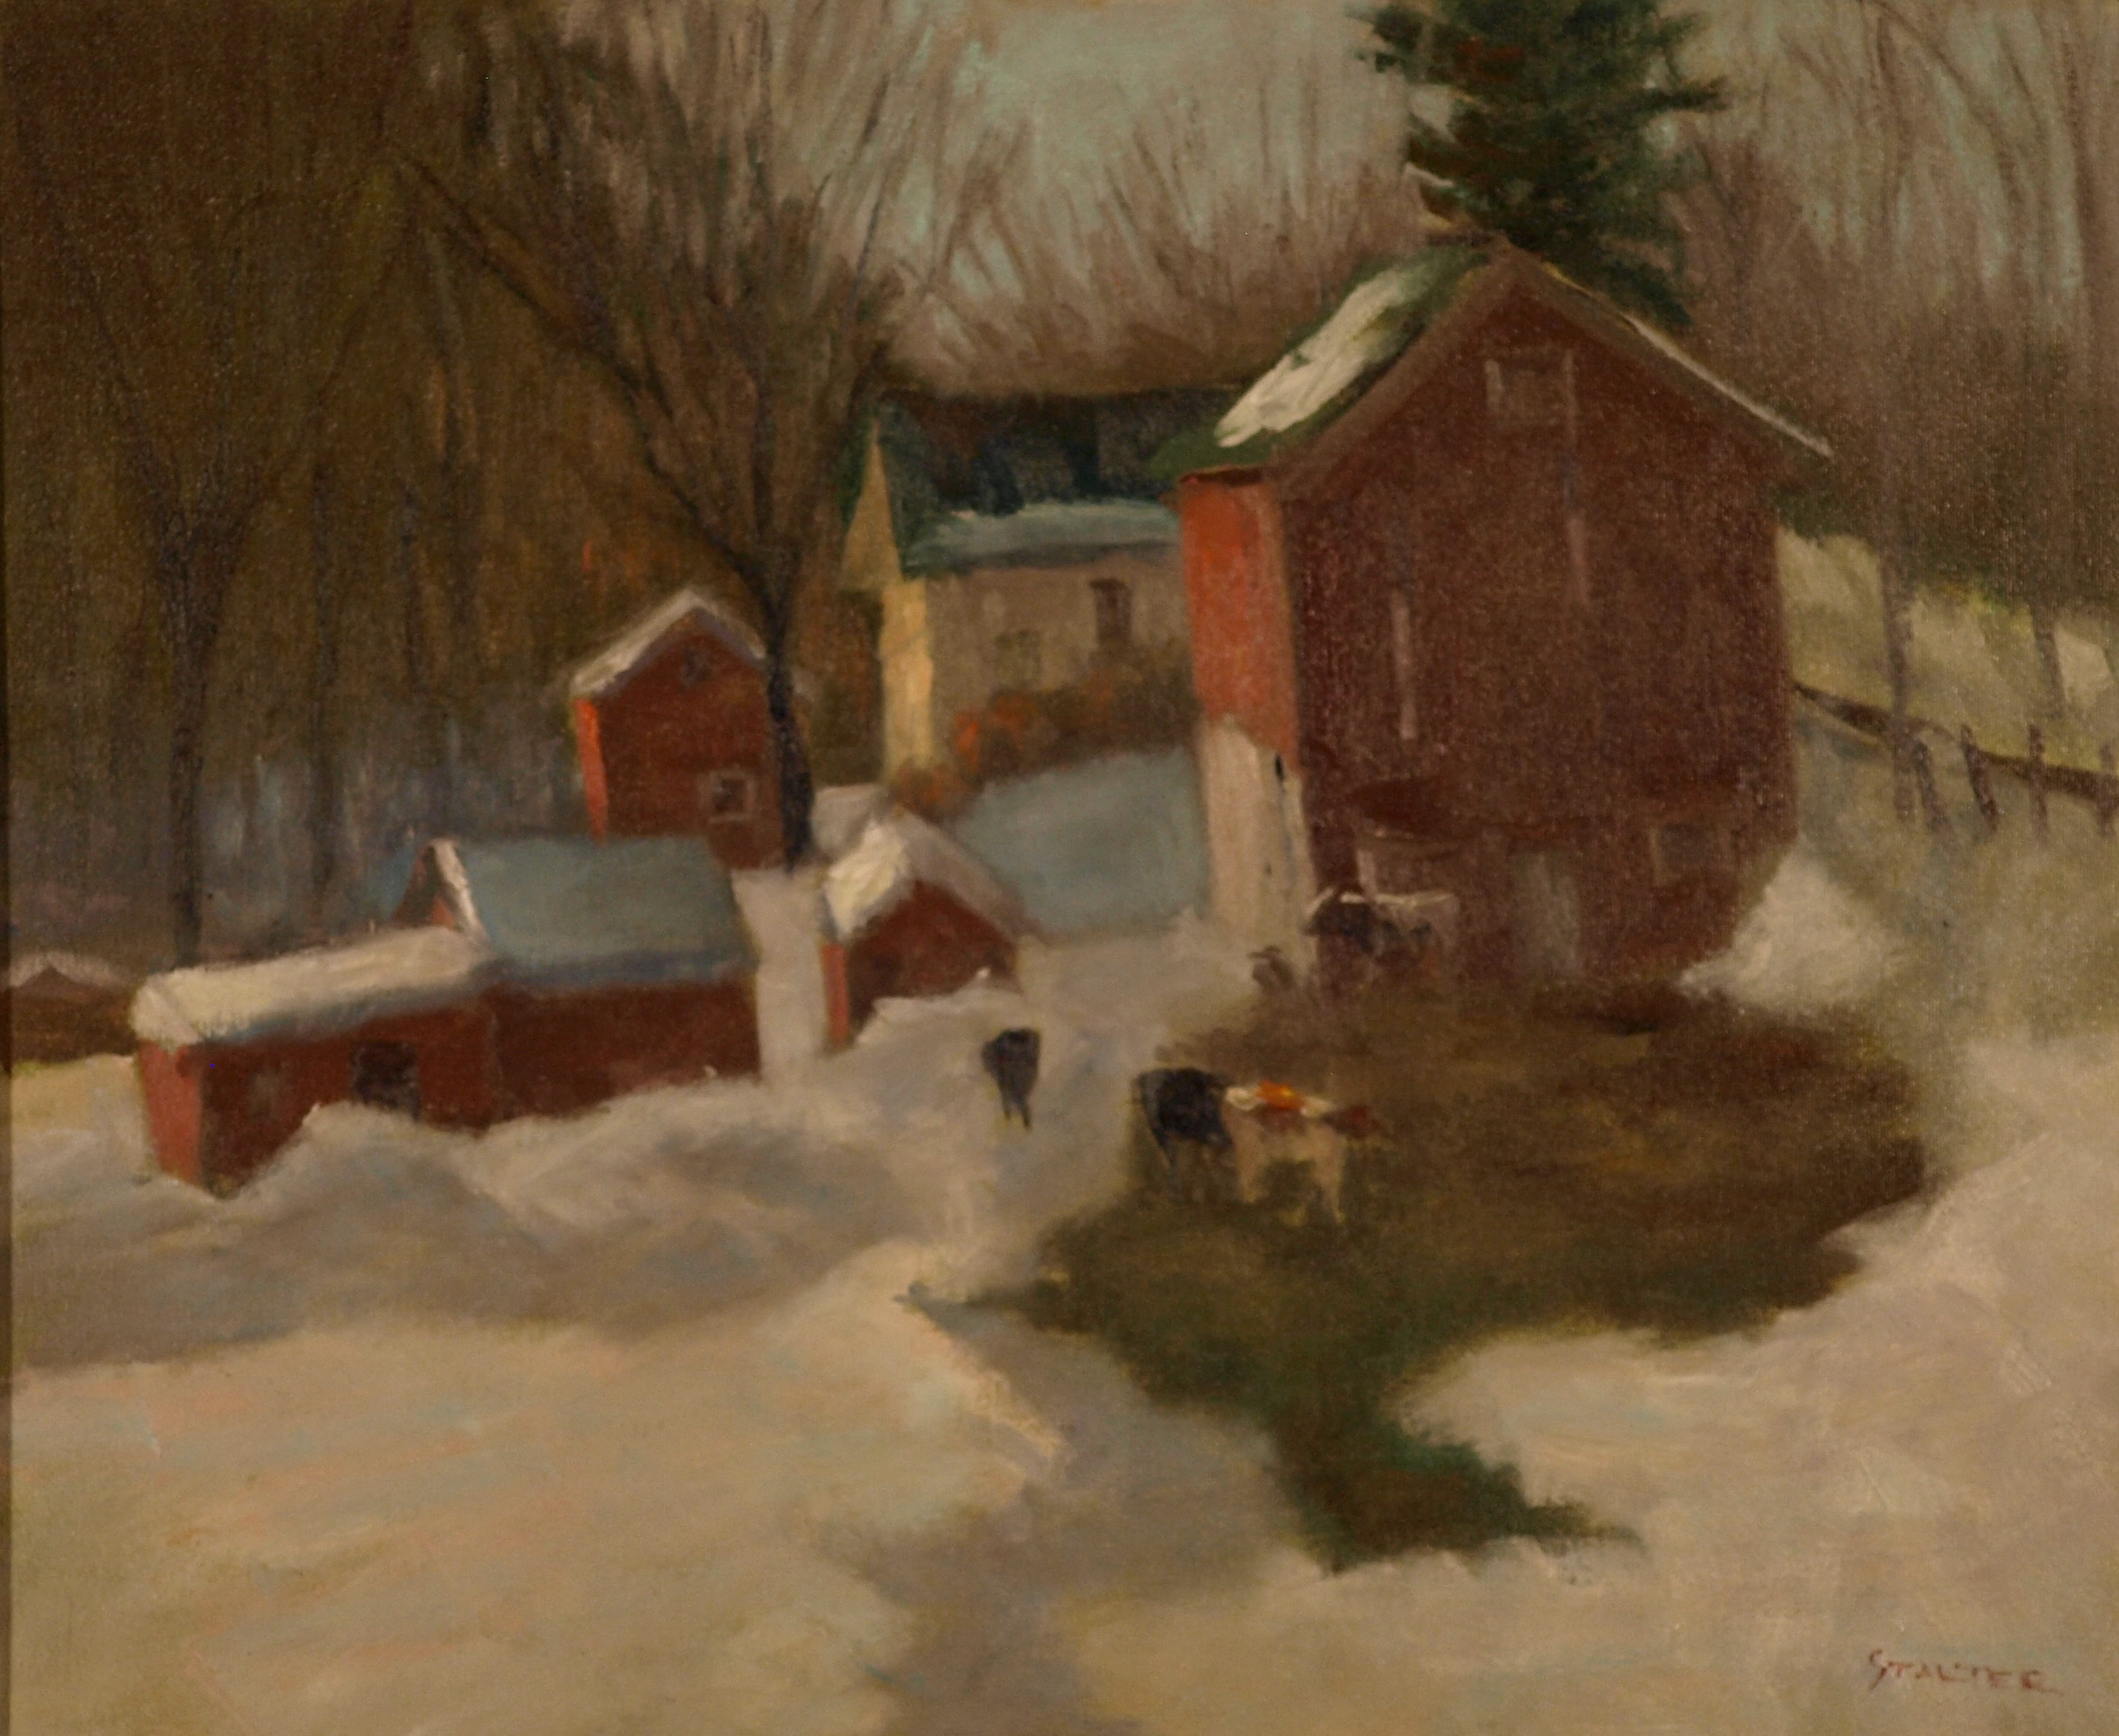 Cows Are Out - Hipp Farm, Oil on Canvas, 20 x 24 Inches, by Richard Stalter, $650